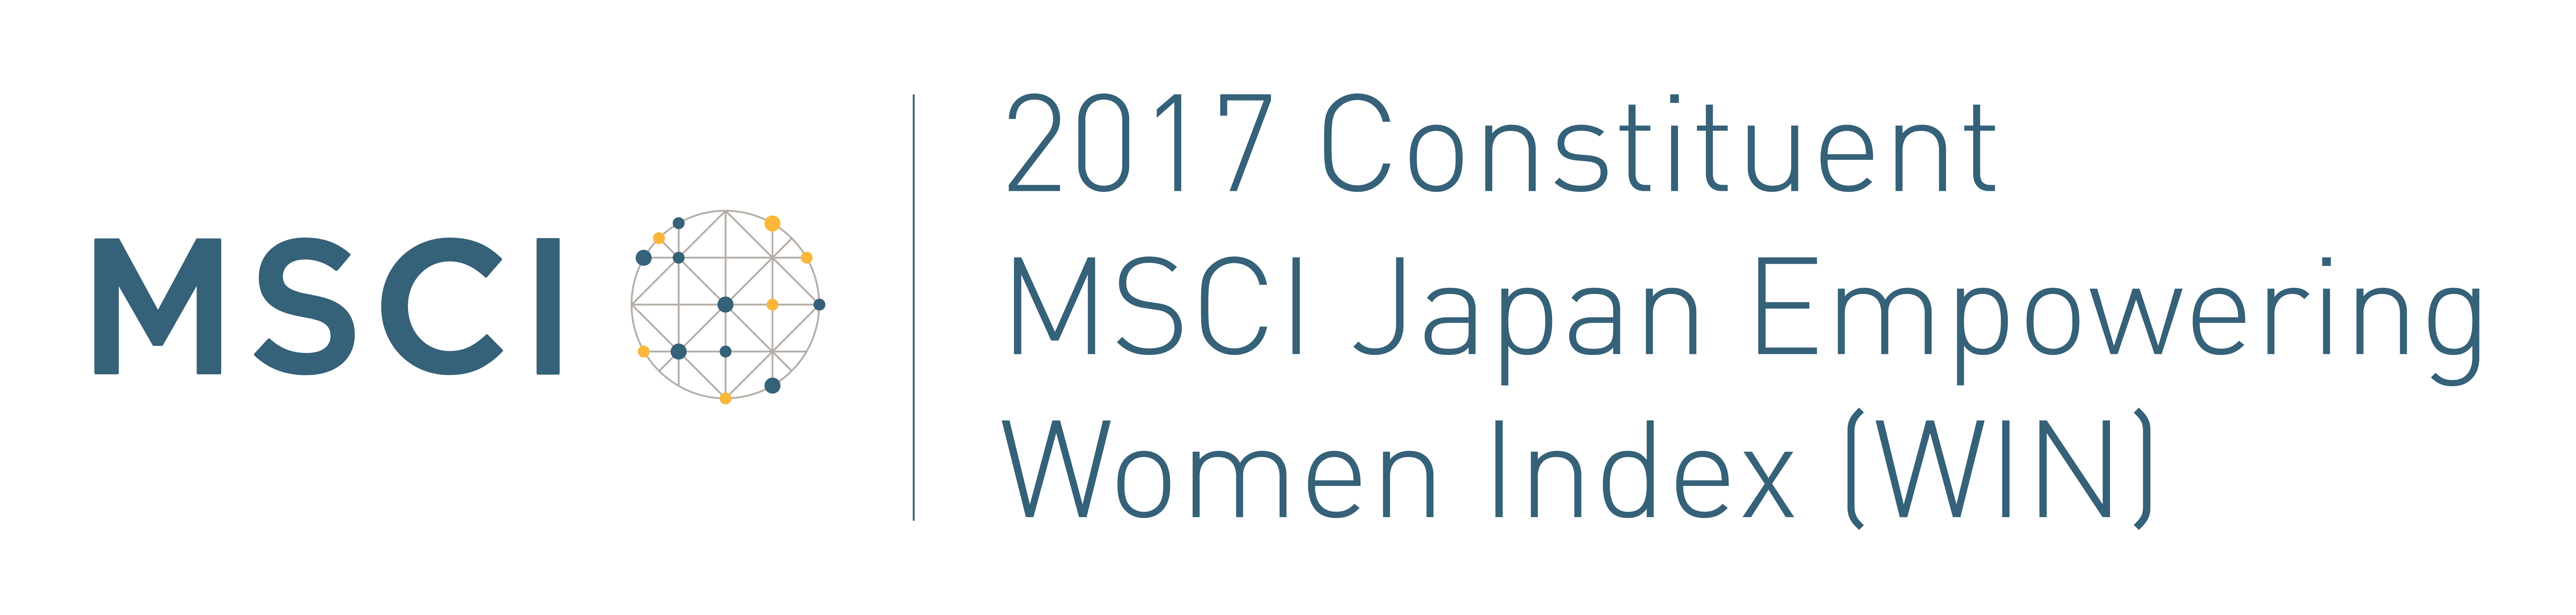 2017 Constituent MSCI Japan Empowering Women Index [WIN]